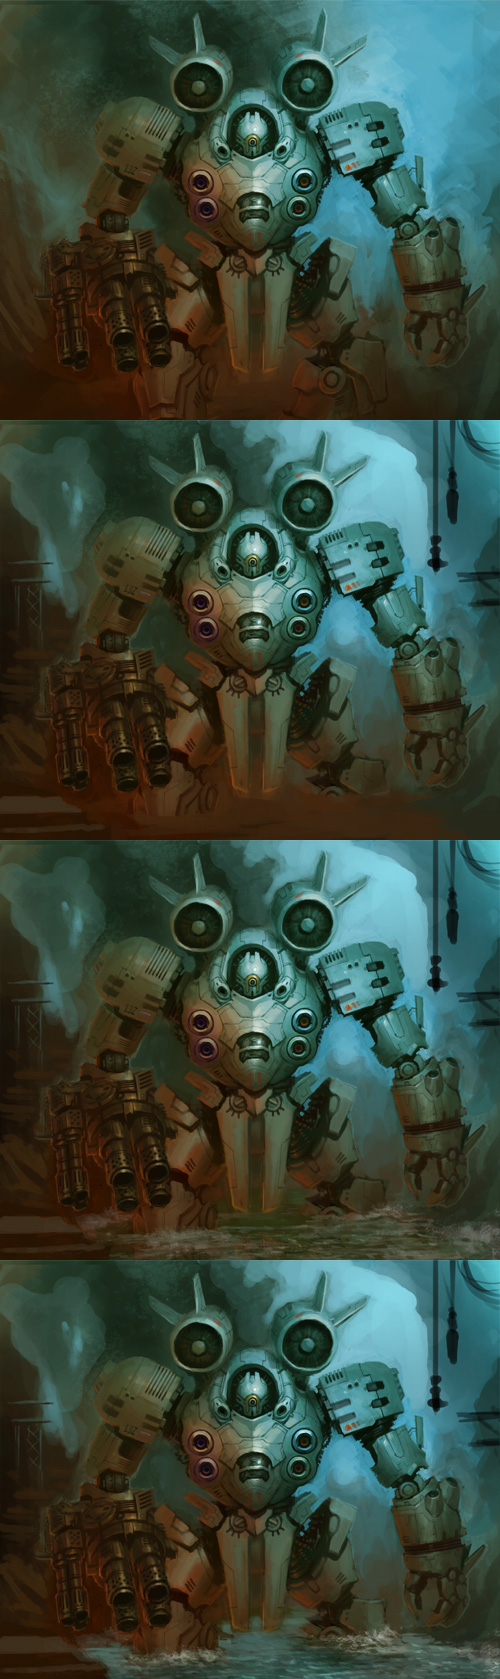 digital painting process mecha